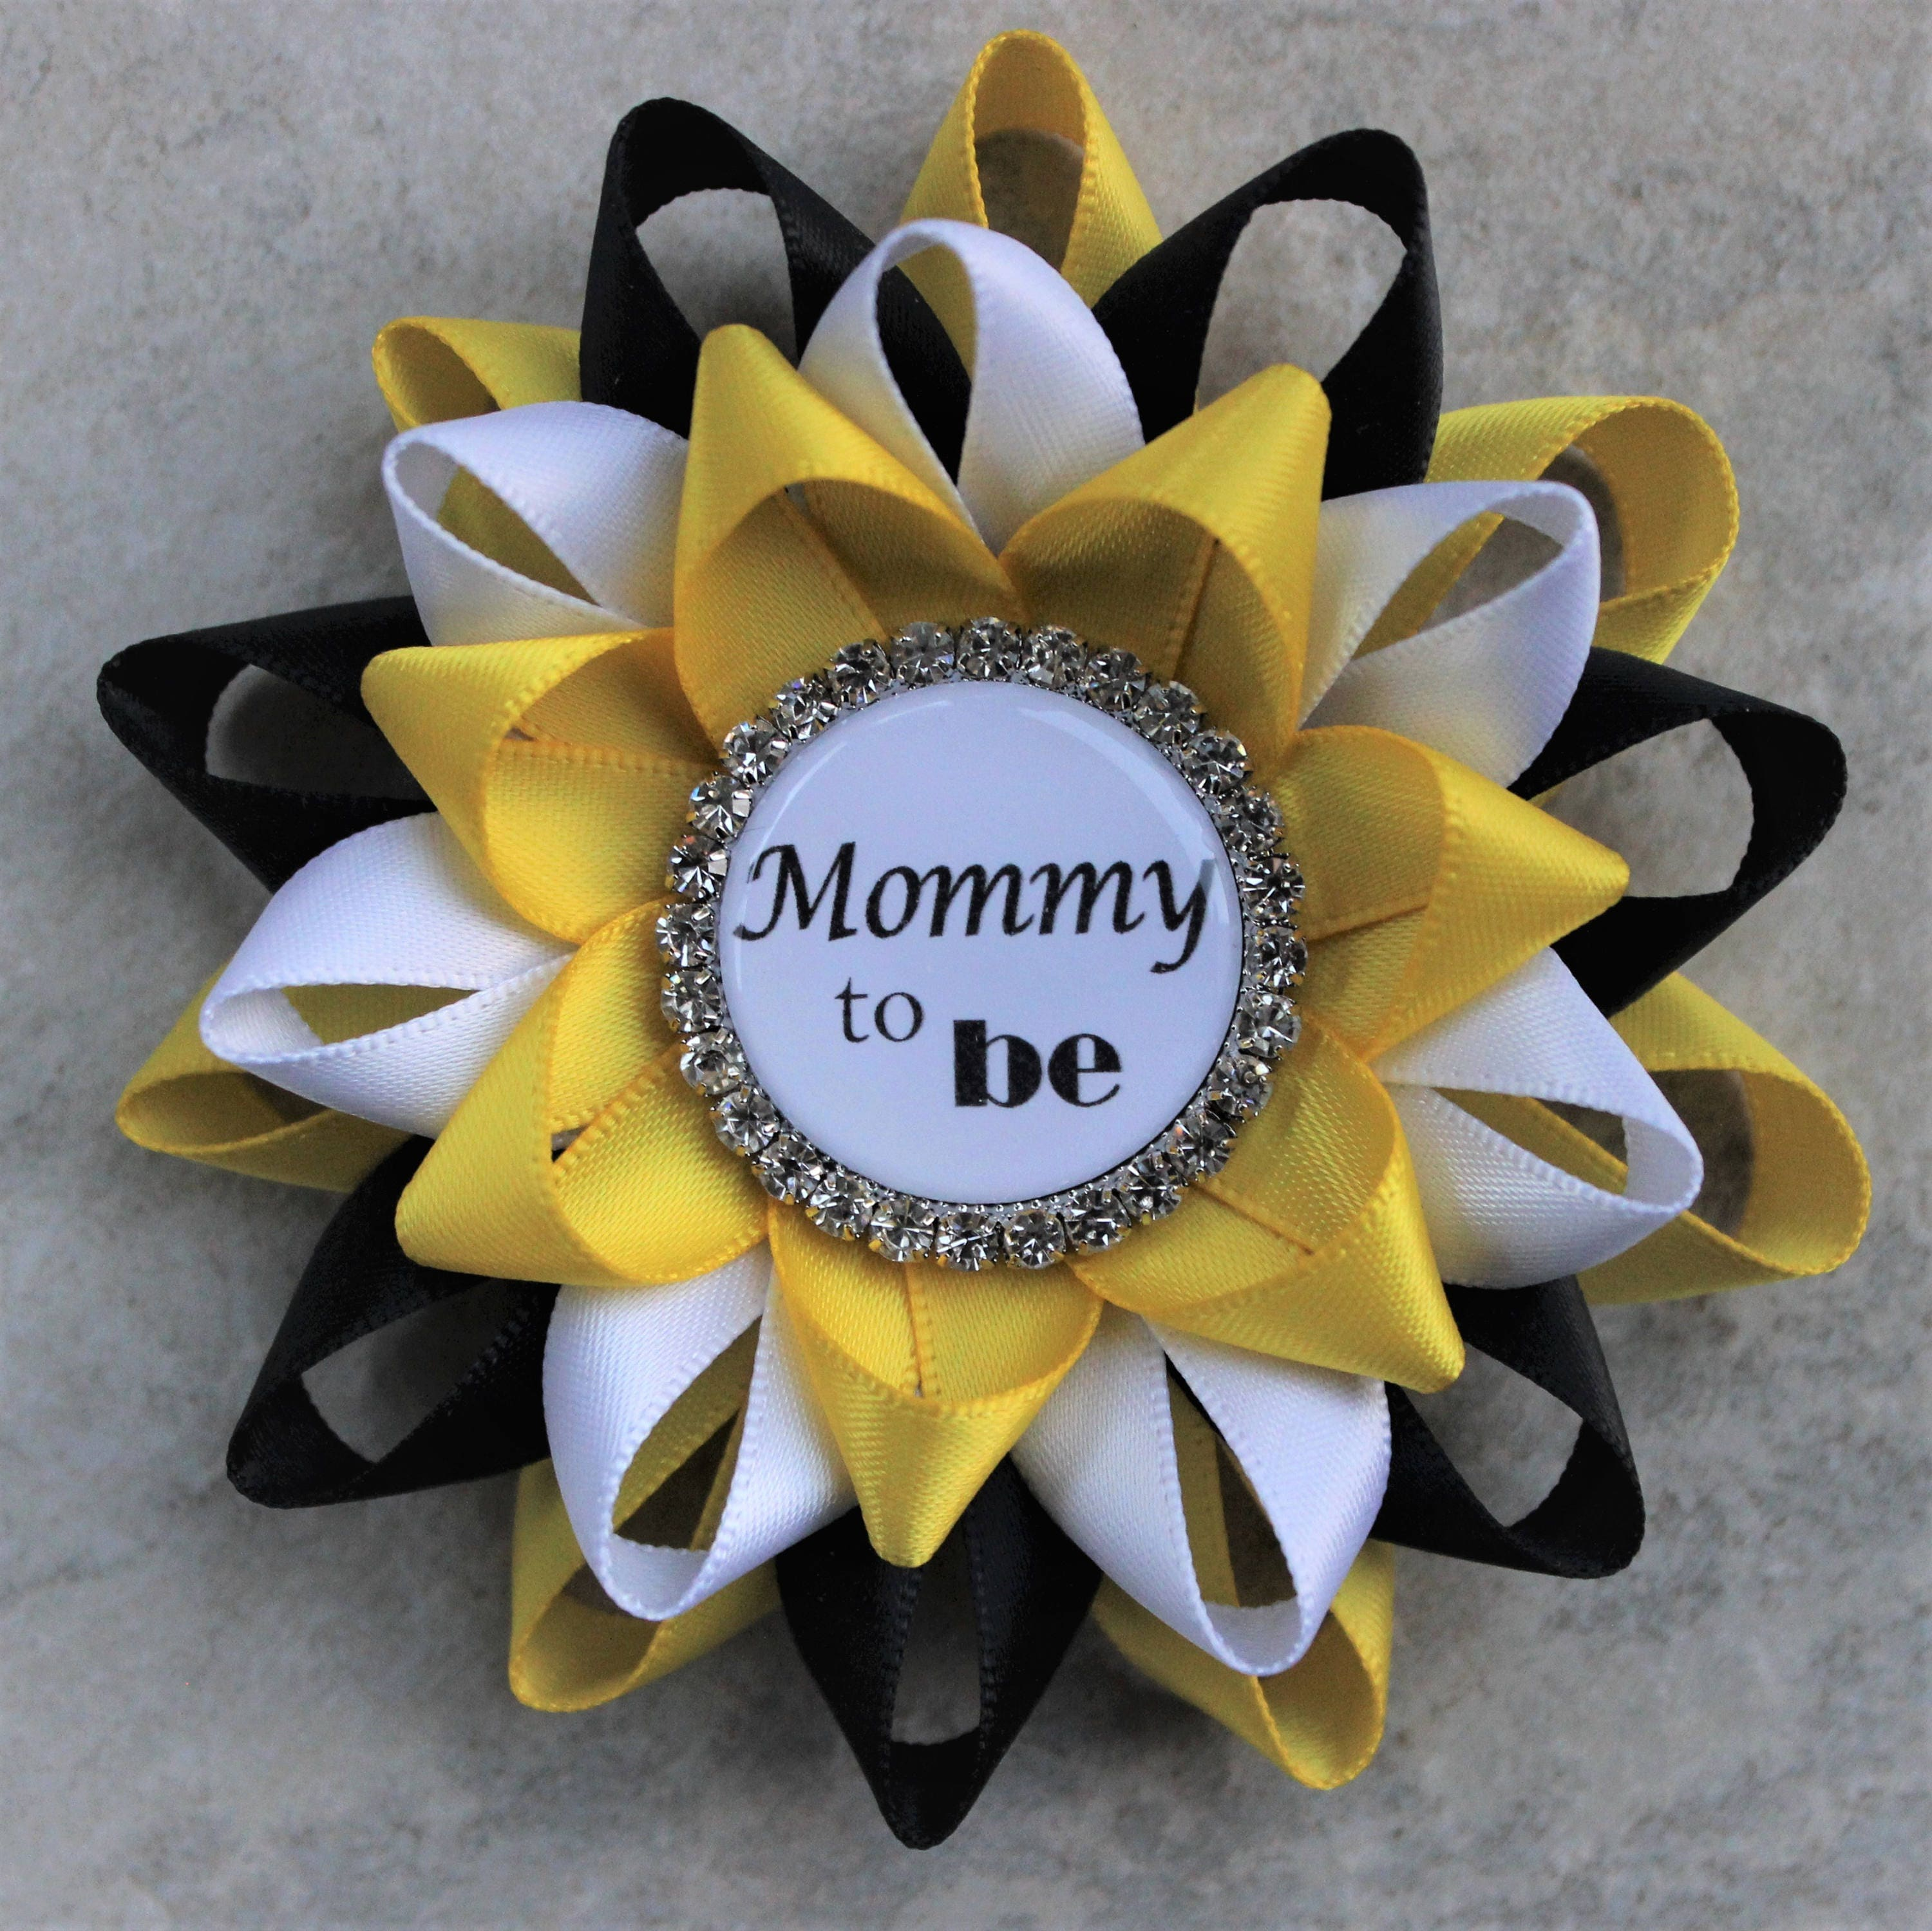 Bee Baby Shower Decorations Black And Yellow Corsages Bumble Themed Mommy To Be White